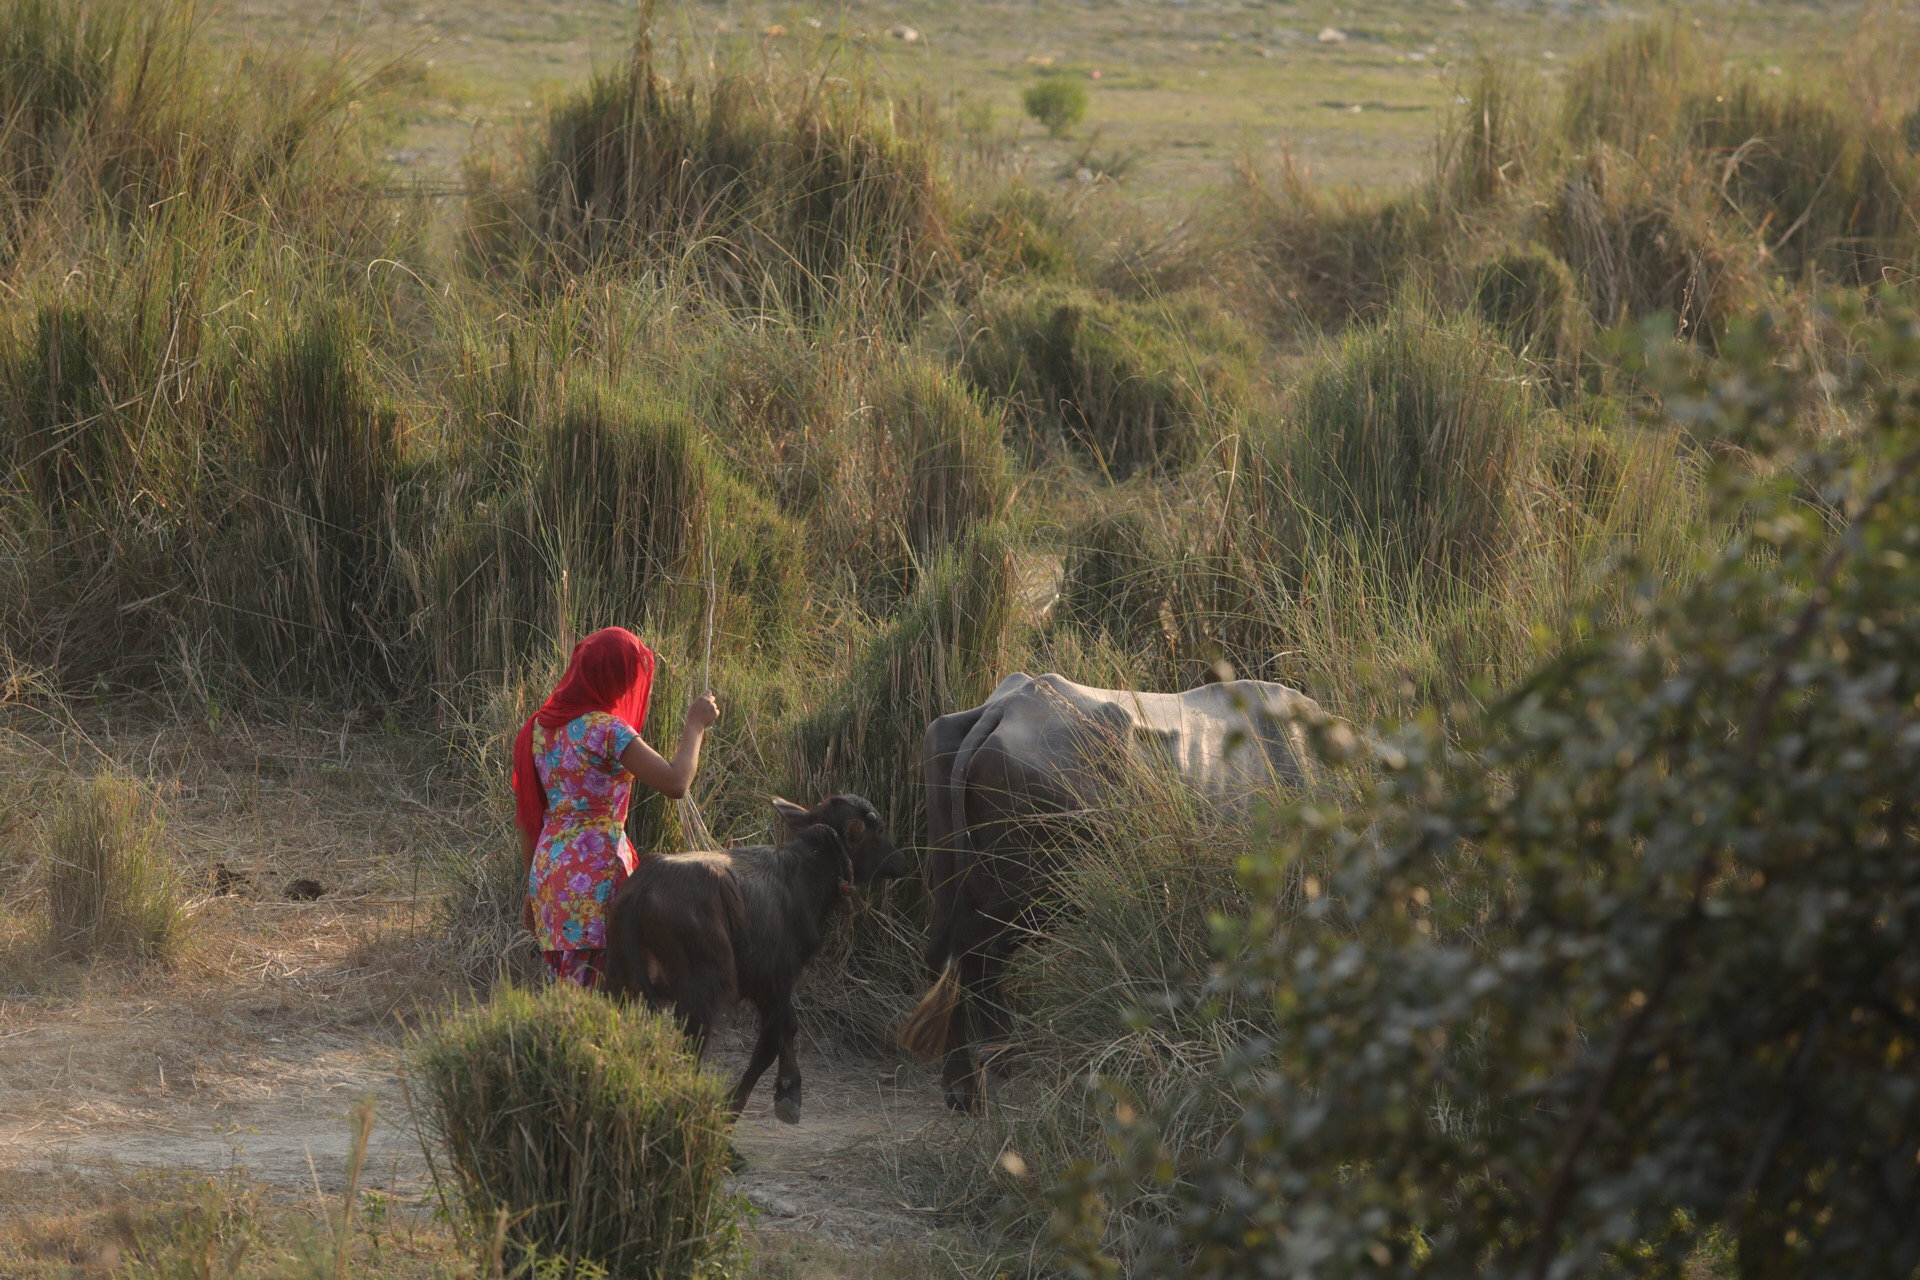 Girl herding water buffalo